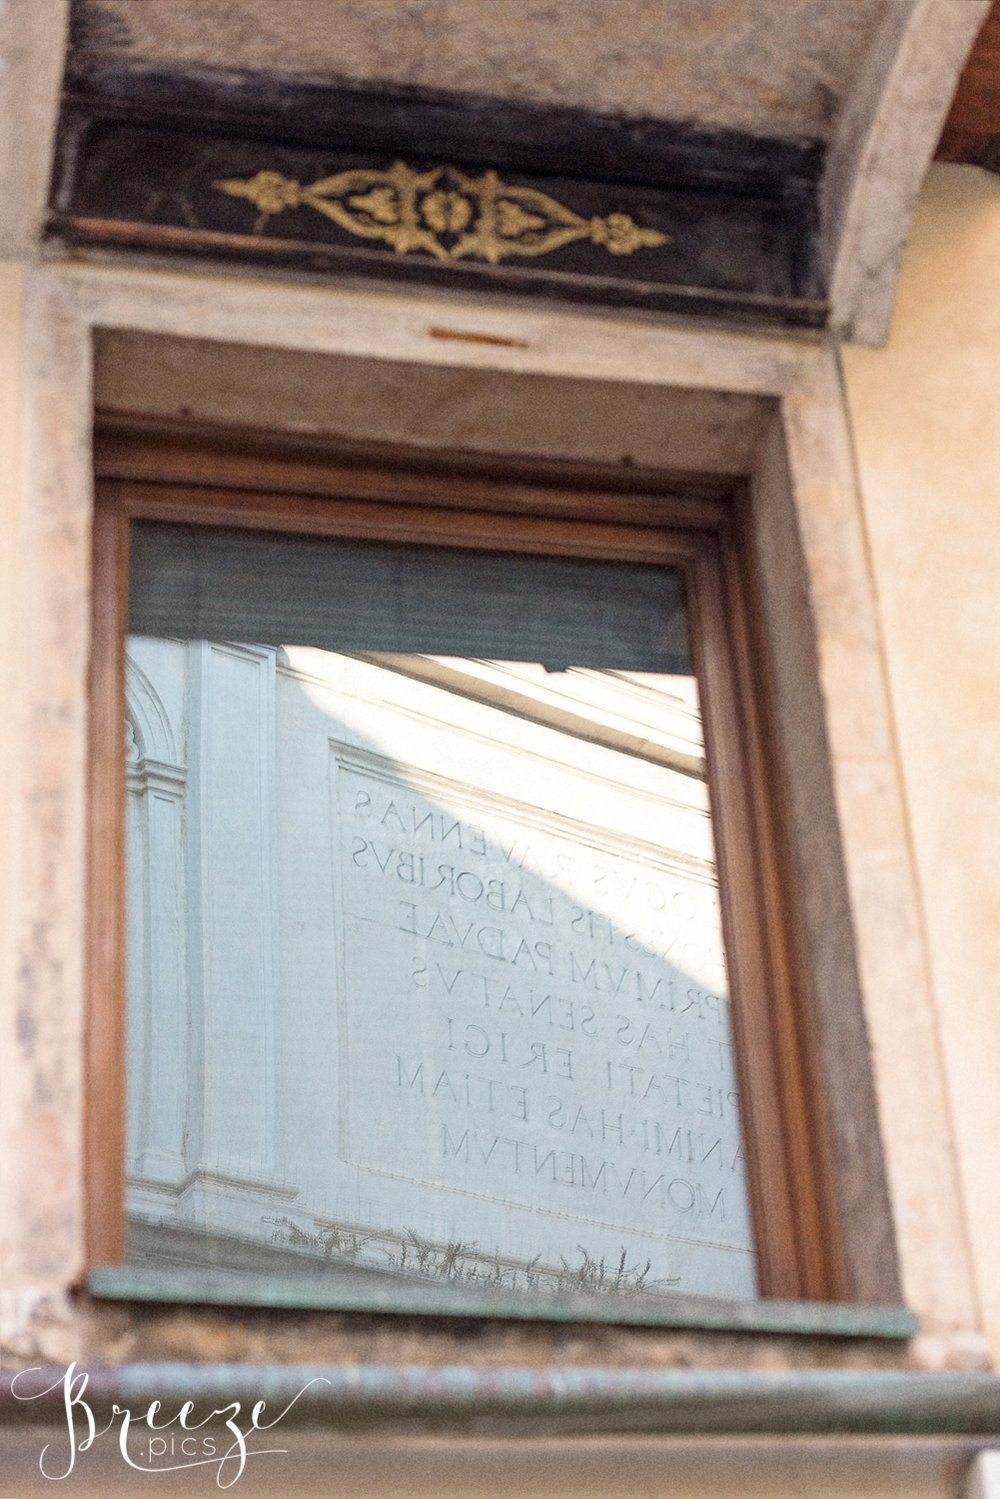 Venetian_Window_text_reflection.jpg